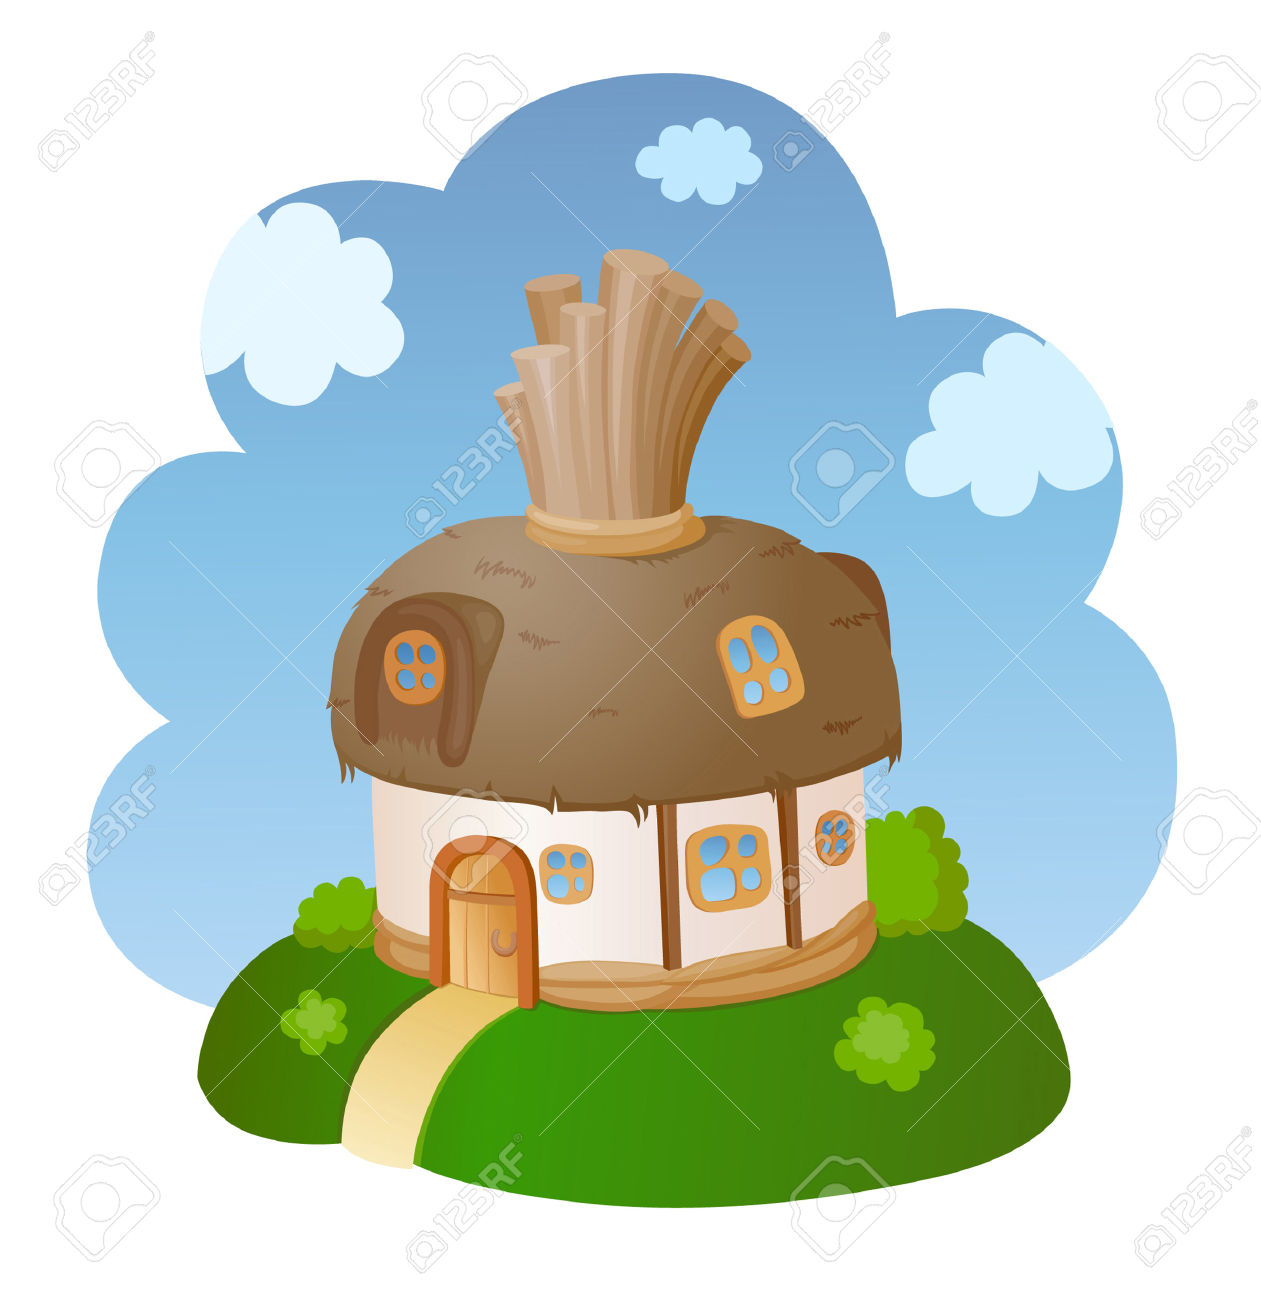 Little Fairy House With A Reed Roof Royalty Free Cliparts, Vectors.